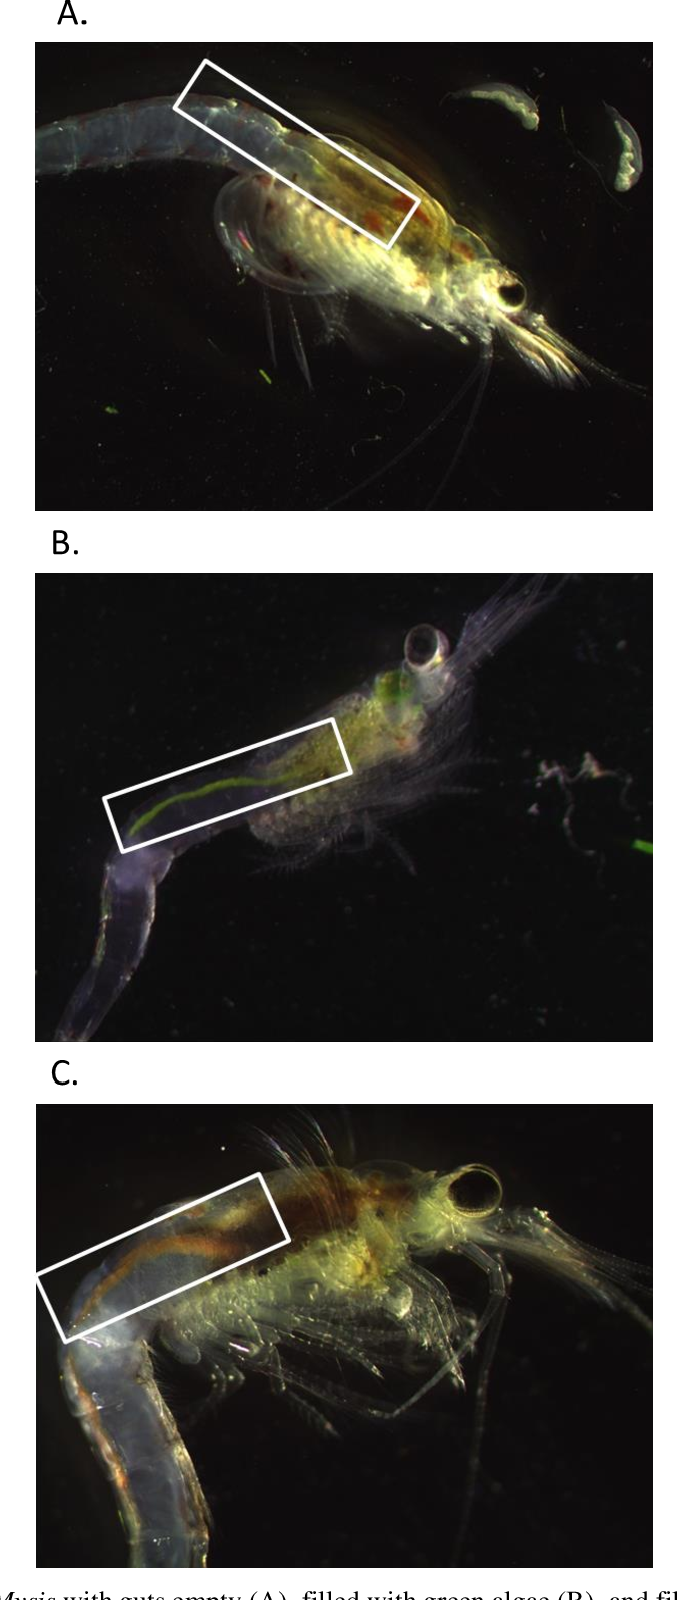 Figure 2: Images of Mysis with guts empty (A), filled with green algae (B), and filled with Artemia (C). Guts are outlined with white boxes. Photographs were taken between 6.3 and 30X magnification with an Infinity1 camera mounted on an Olympus SZS9 dissecting microscope.